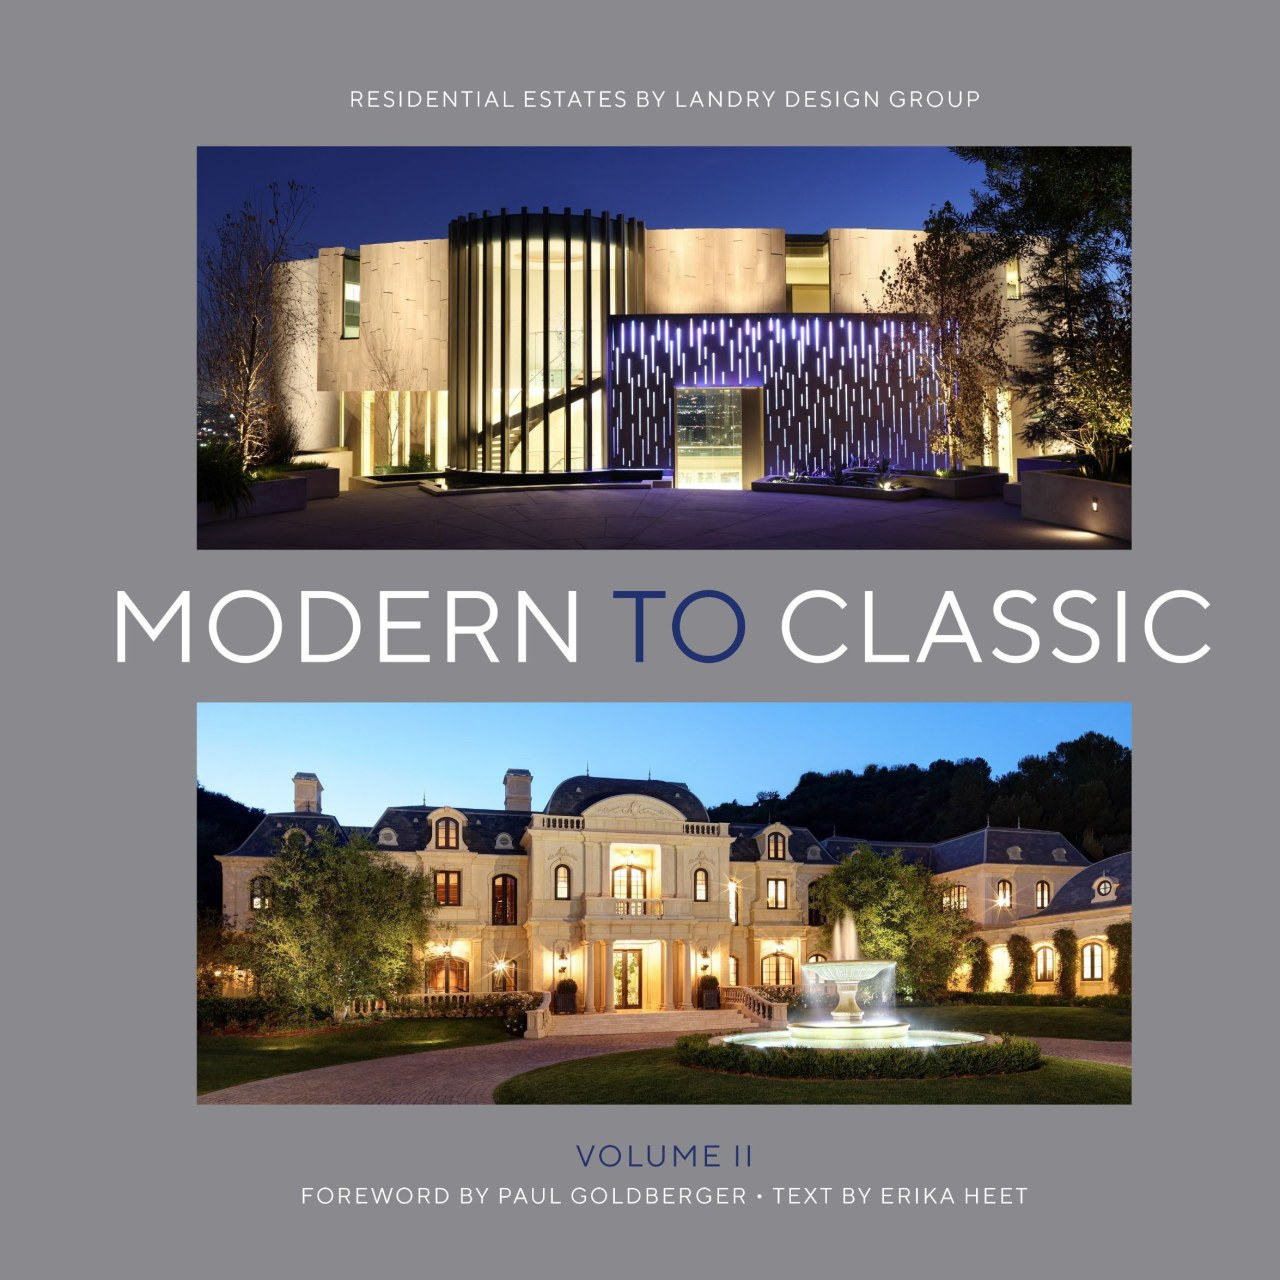 Modem to Classic II: Residential Estates by Landry advertising, architecture, estate, facade, home, property, real estate, gray